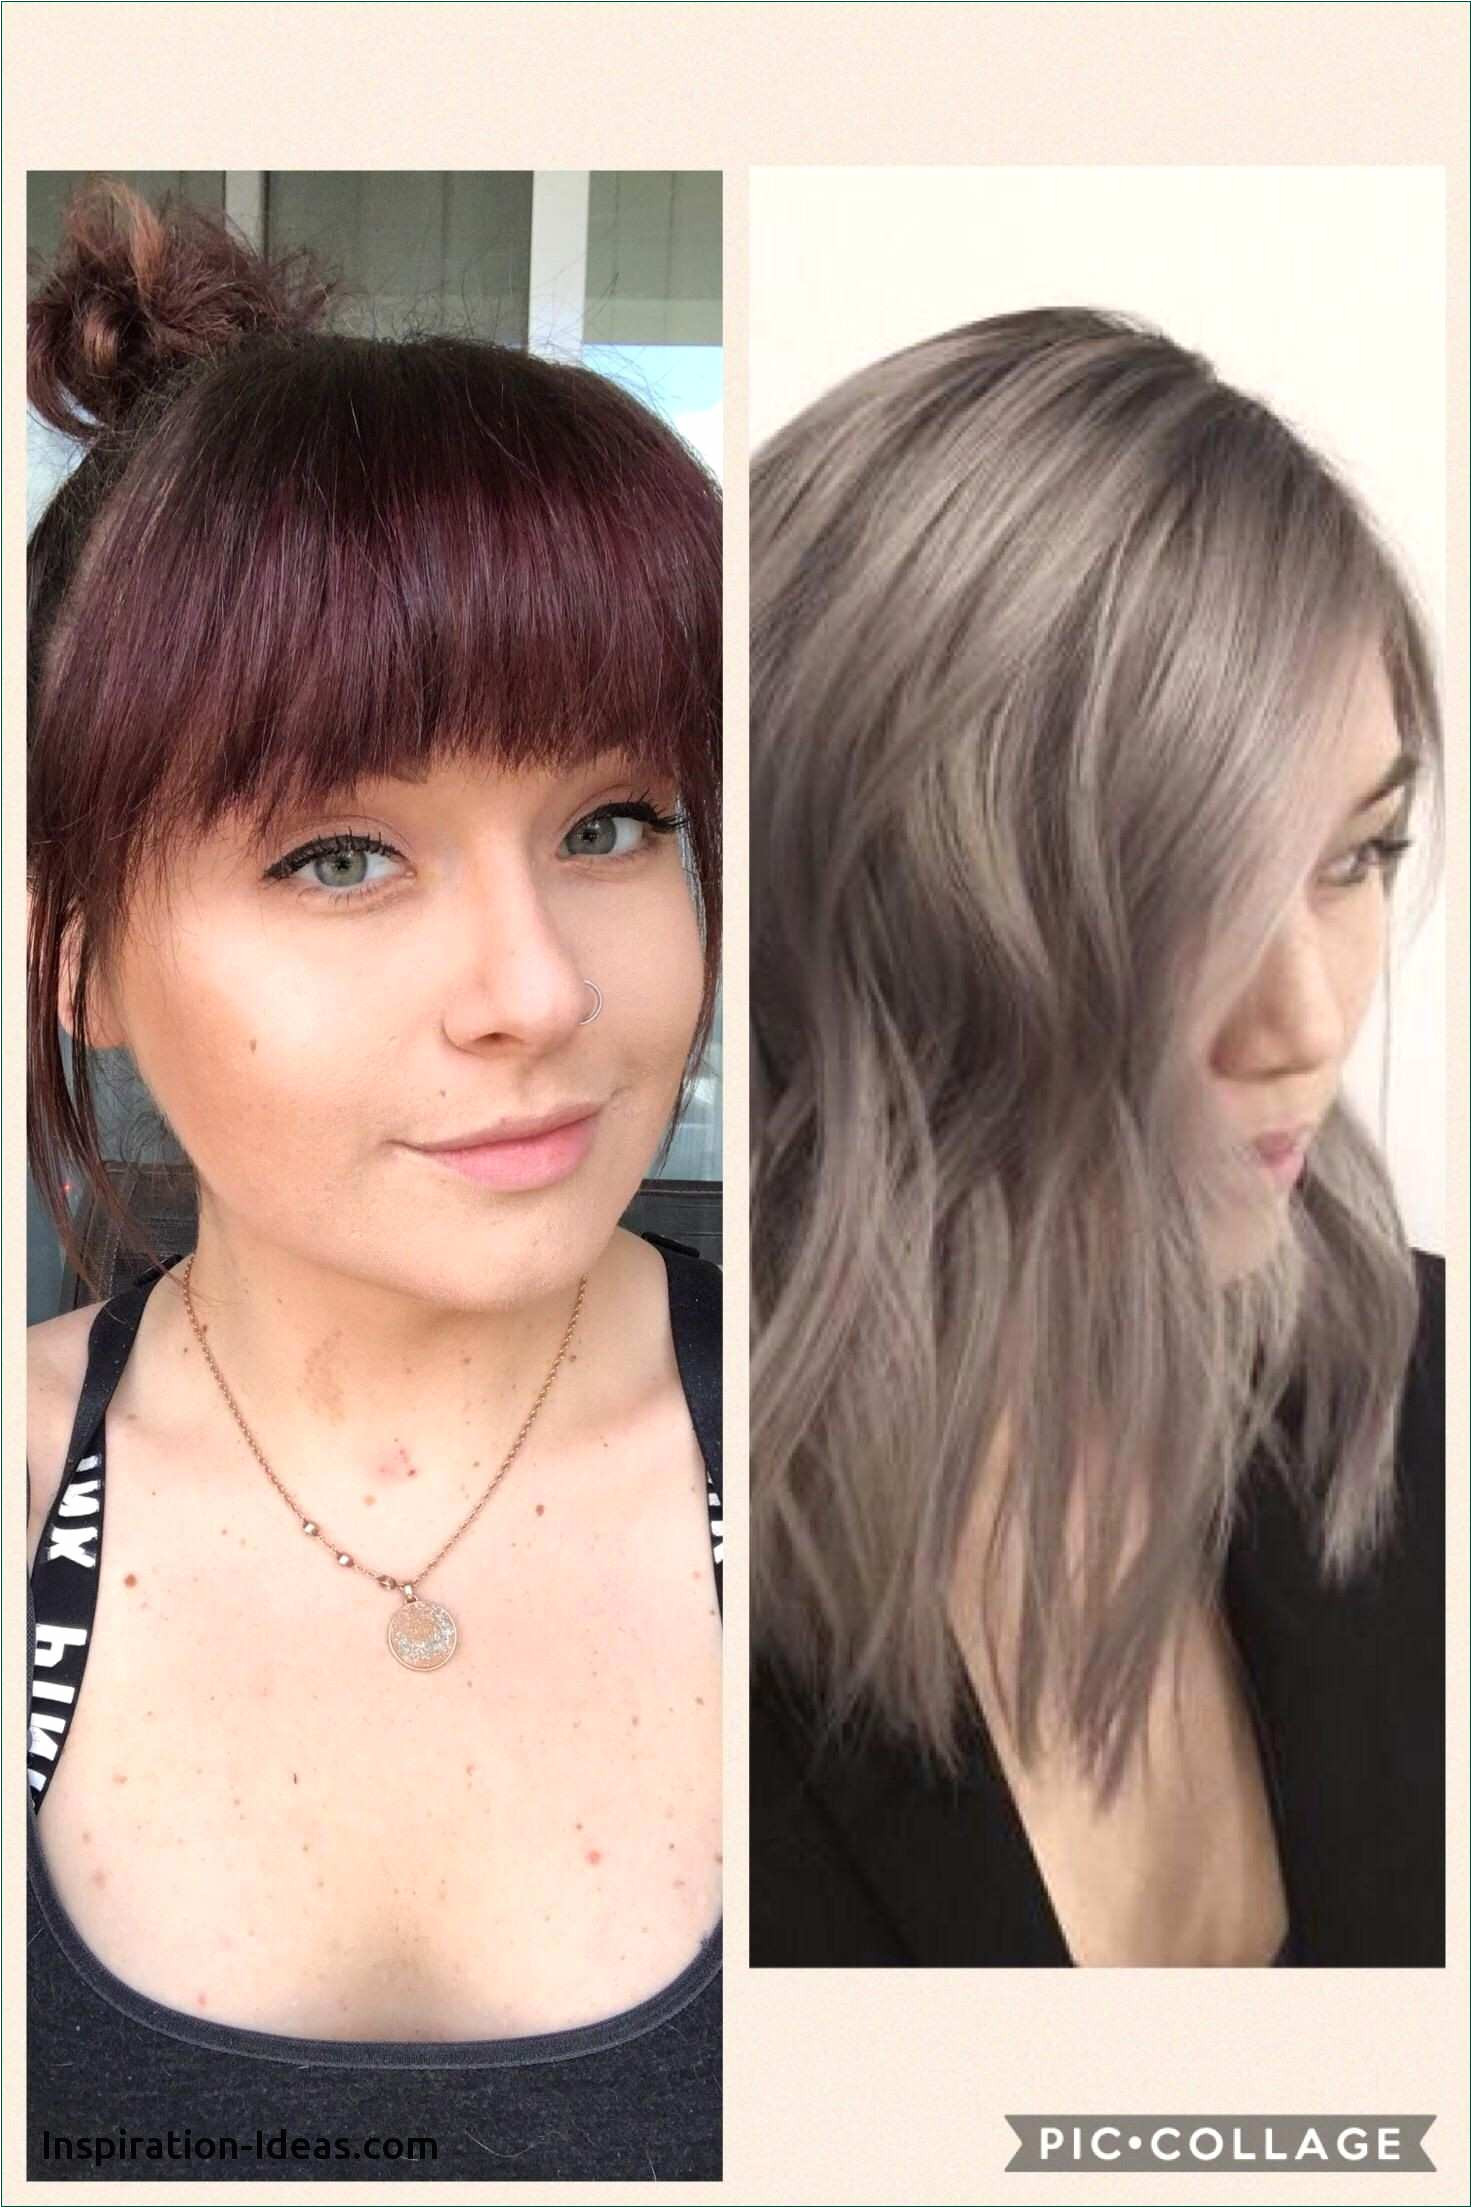 Hairstyles for Going to A Wedding Simple N99e Cute Hairstyles for Going Out Awesome Hairstyles and